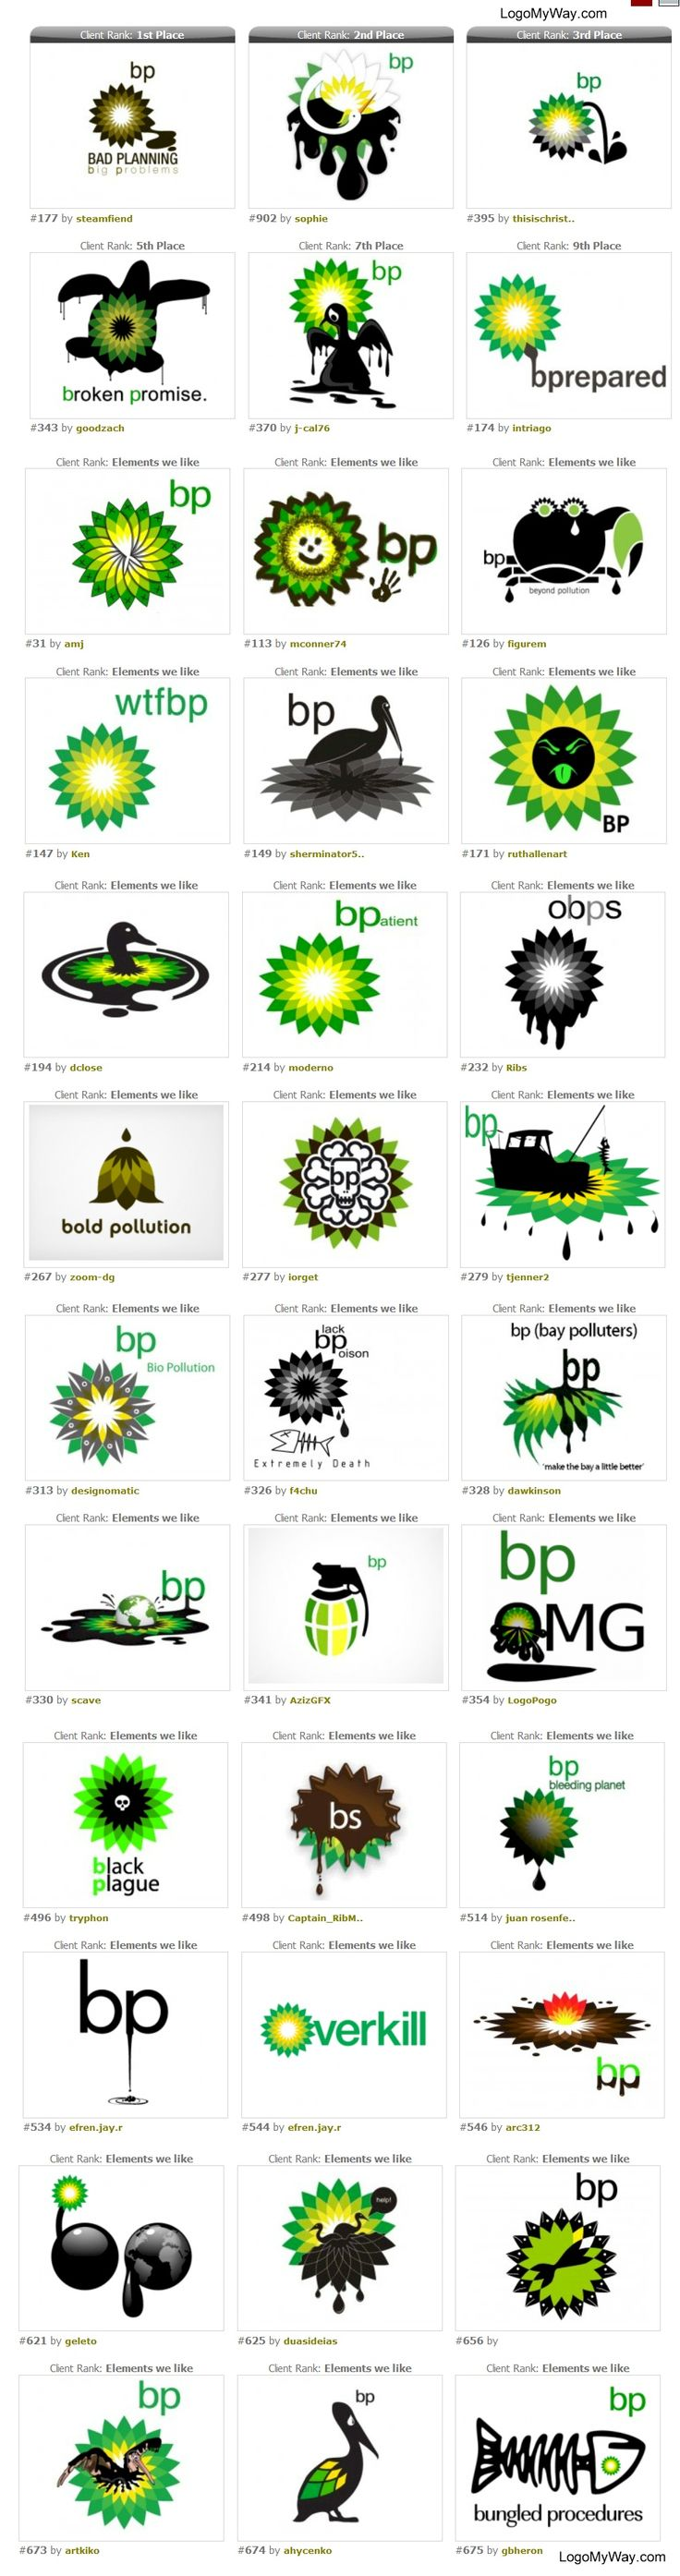 Remember the BP oil spill? These logo designers wanted to make sure you'll NEVER forget.